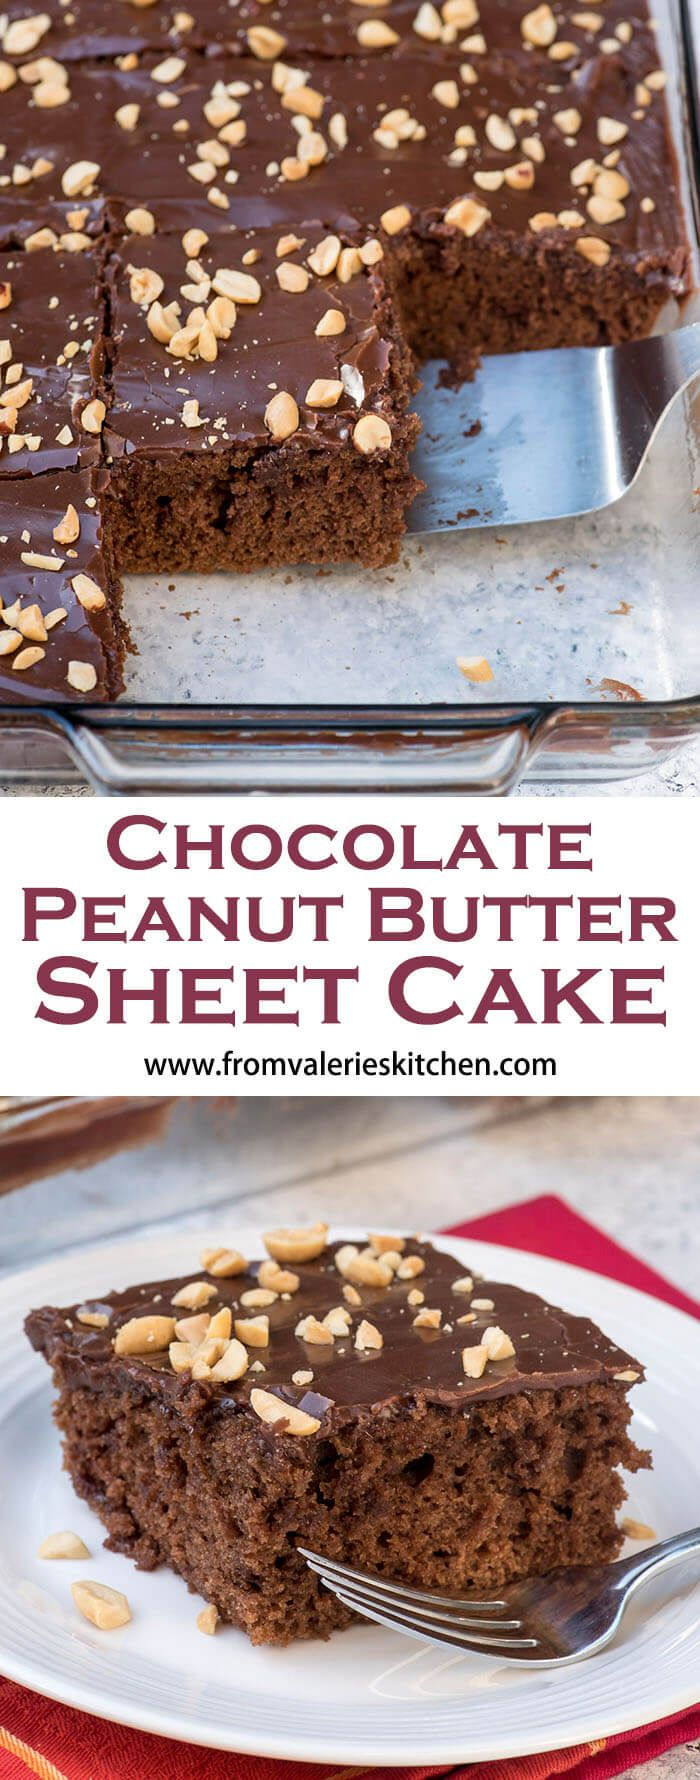 This Chocolate Peanut Butter Sheet Cake is a great choice for the chocolate-peanut butter lovers in your life. Sweet, simple to make, and so indulgent!